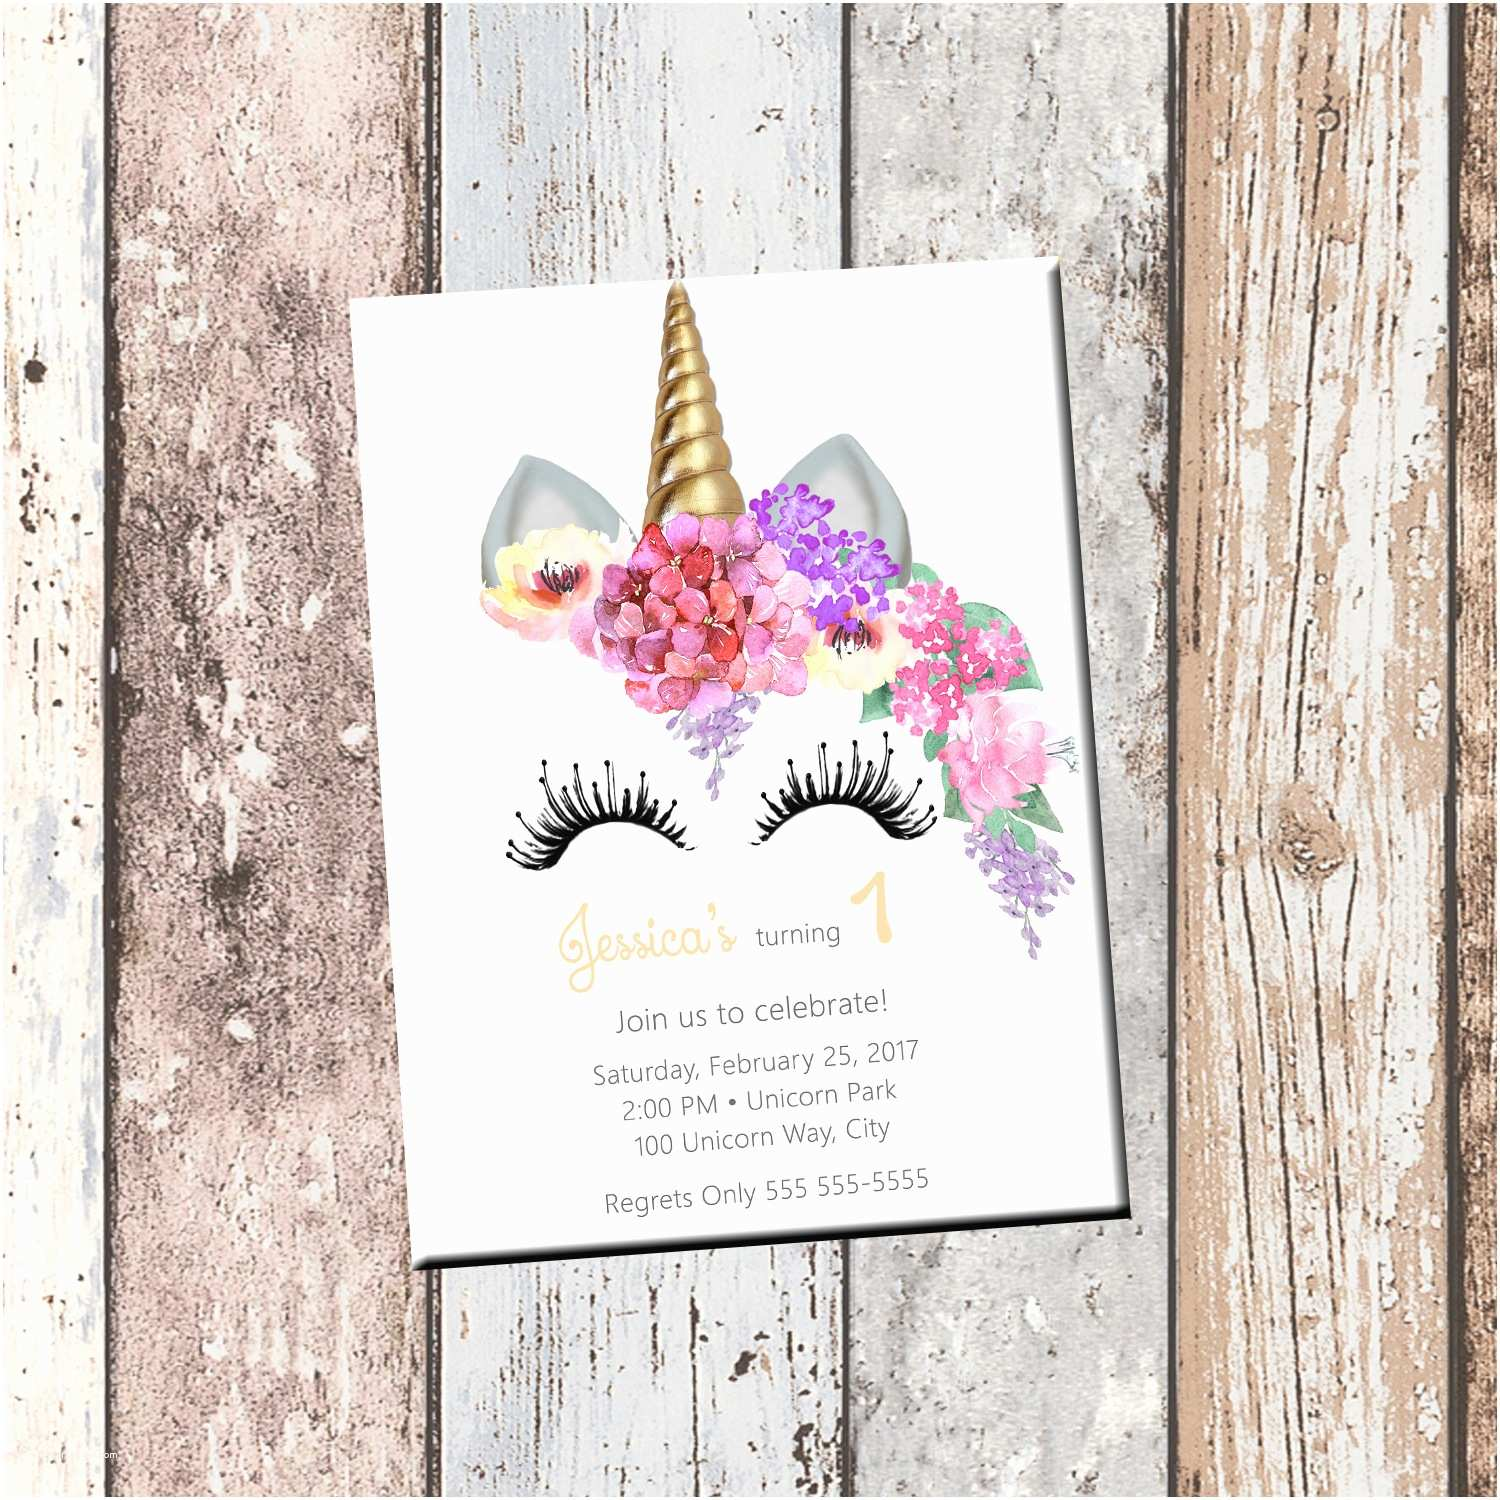 Custom Birthday Invitations Unicorn Birthday Personalized Invitation 1 Sided Birthday